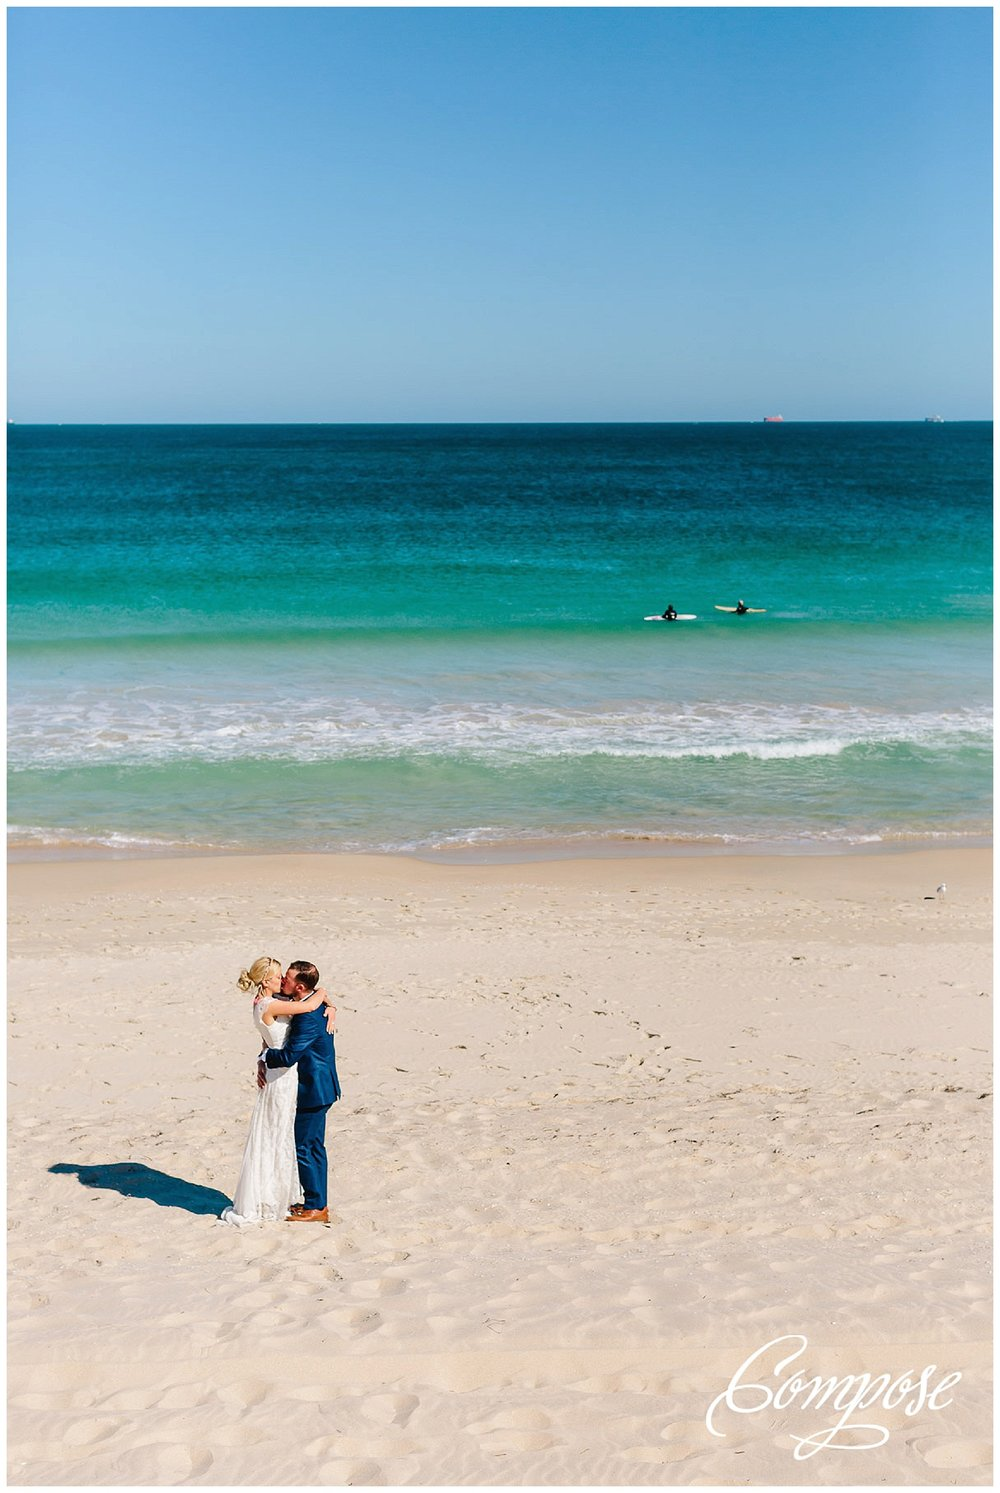 Perth Wedding Photography